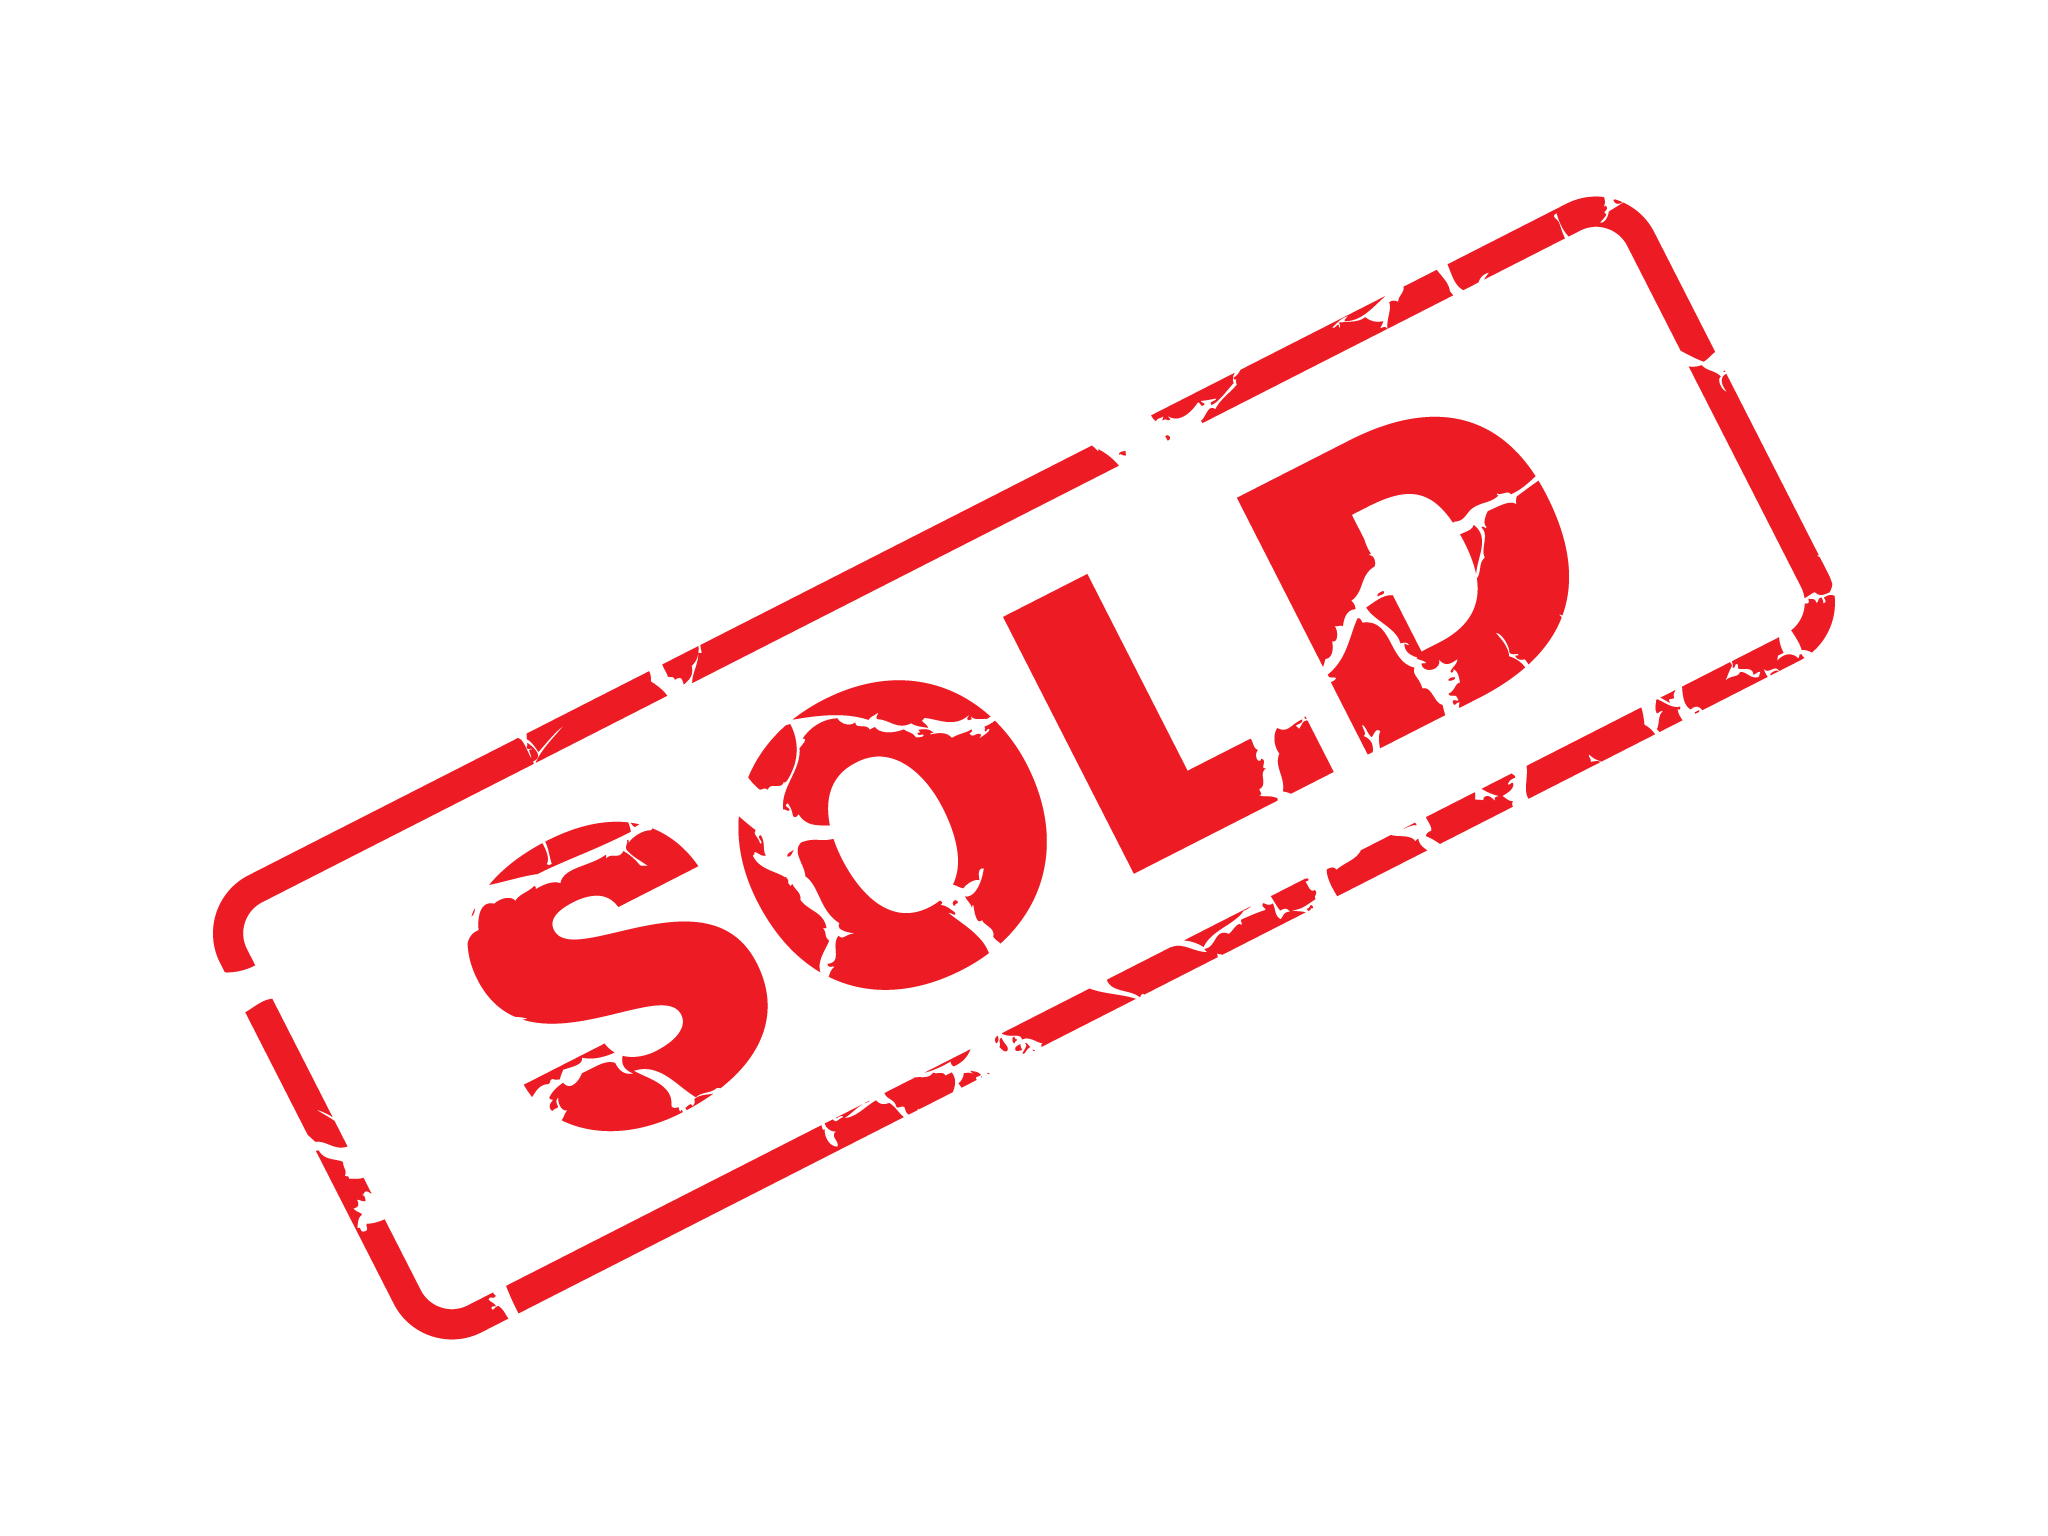 Just sold png. Property listings novus solutions